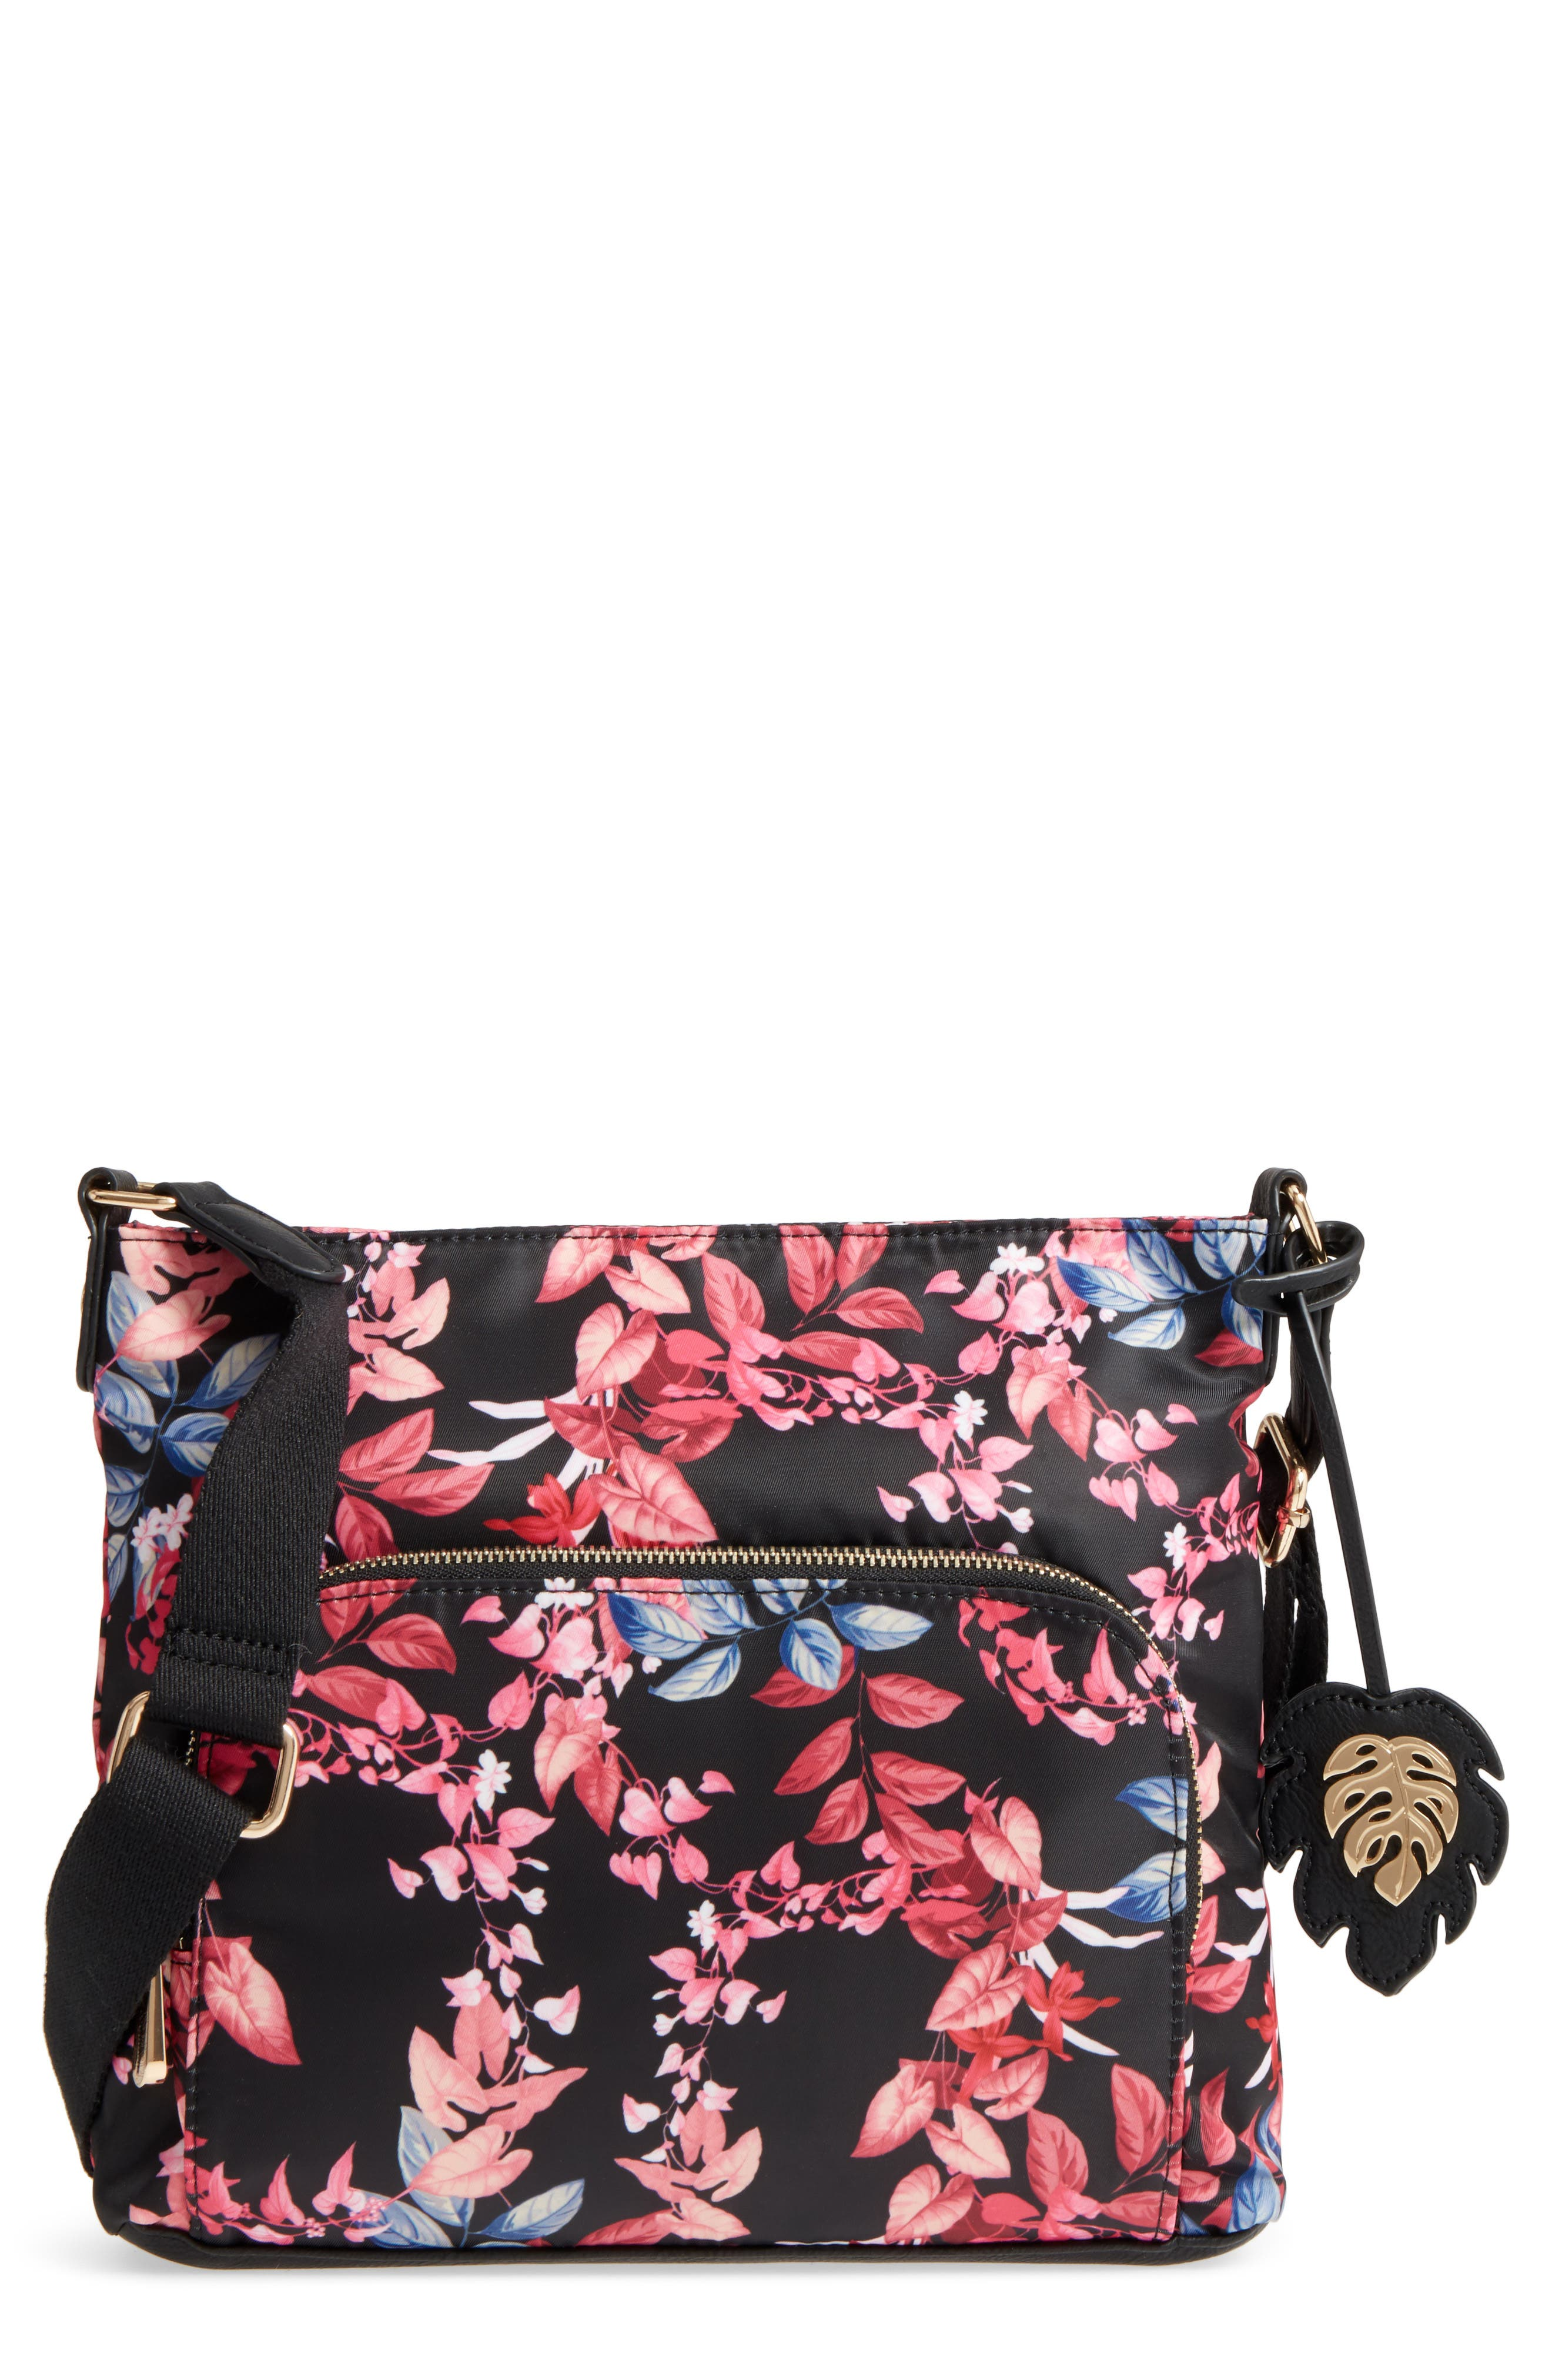 Siesta Key Waterproof Nylon Crossbody Bag,                             Main thumbnail 1, color,                             001